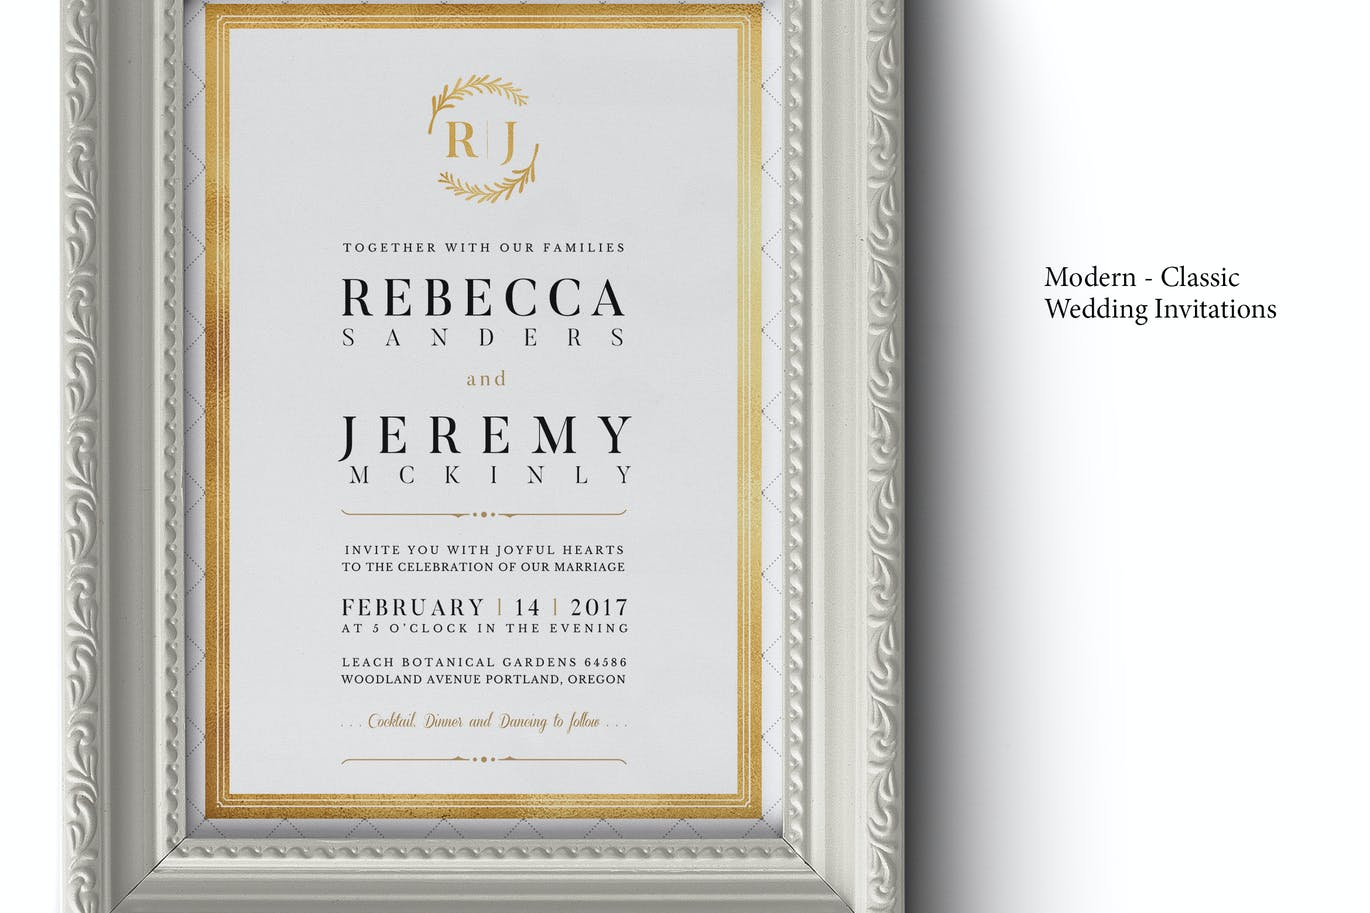 Modern Classic Wedding Invitations by BNIMIT on Envato Elements